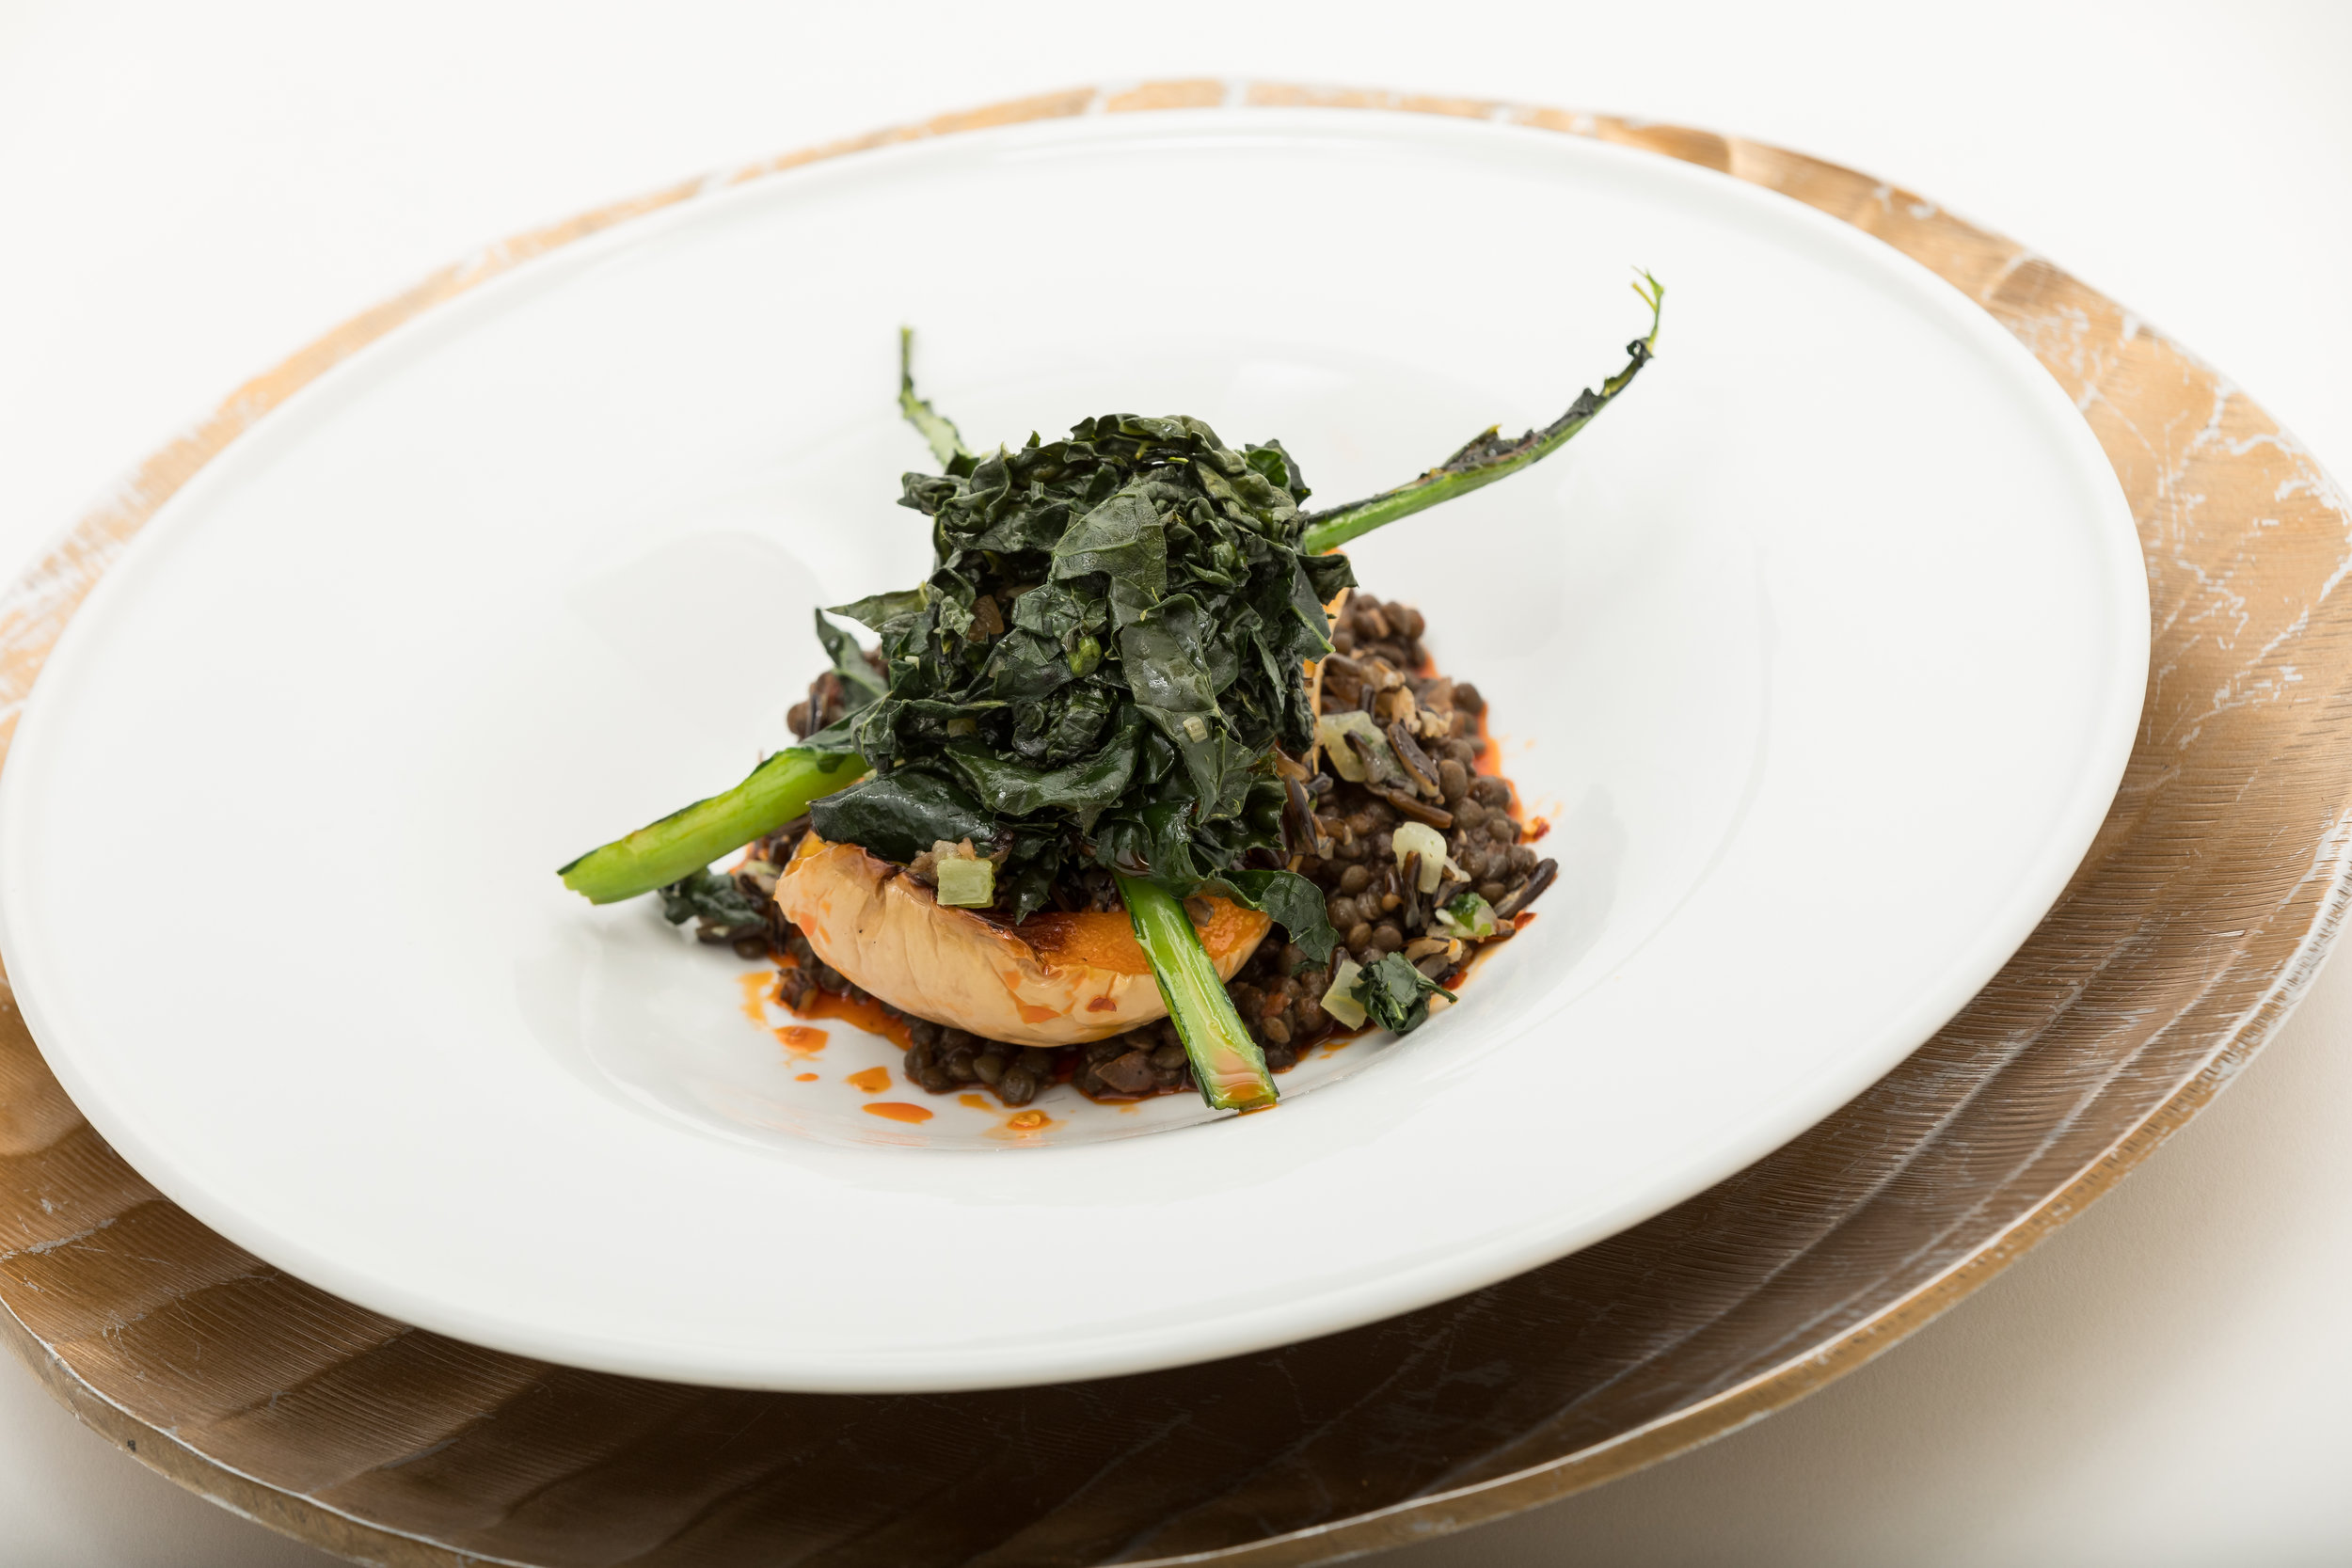 Five-Spice Beluga Lentils & Roast Butternut Squash w_Wild Rice, Greens, Chili Oil & Black Vinegar_Amanda Gentile4.jpg